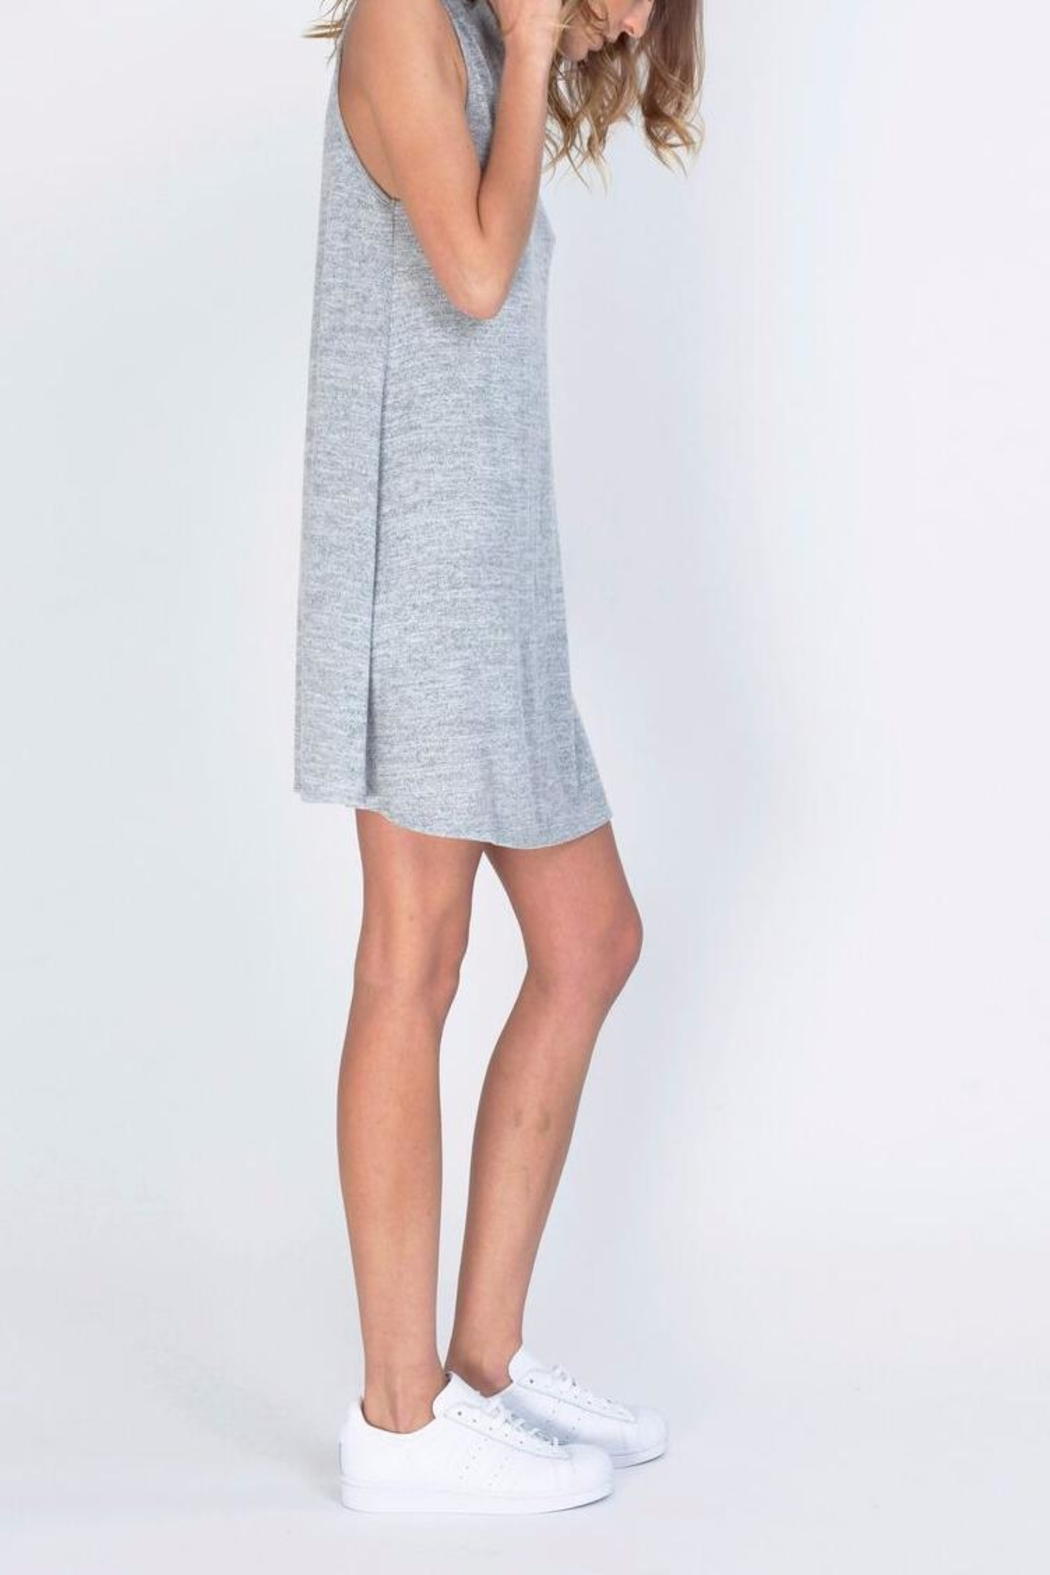 Gentle Fawn Motivated Gray Dress - Front Cropped Image